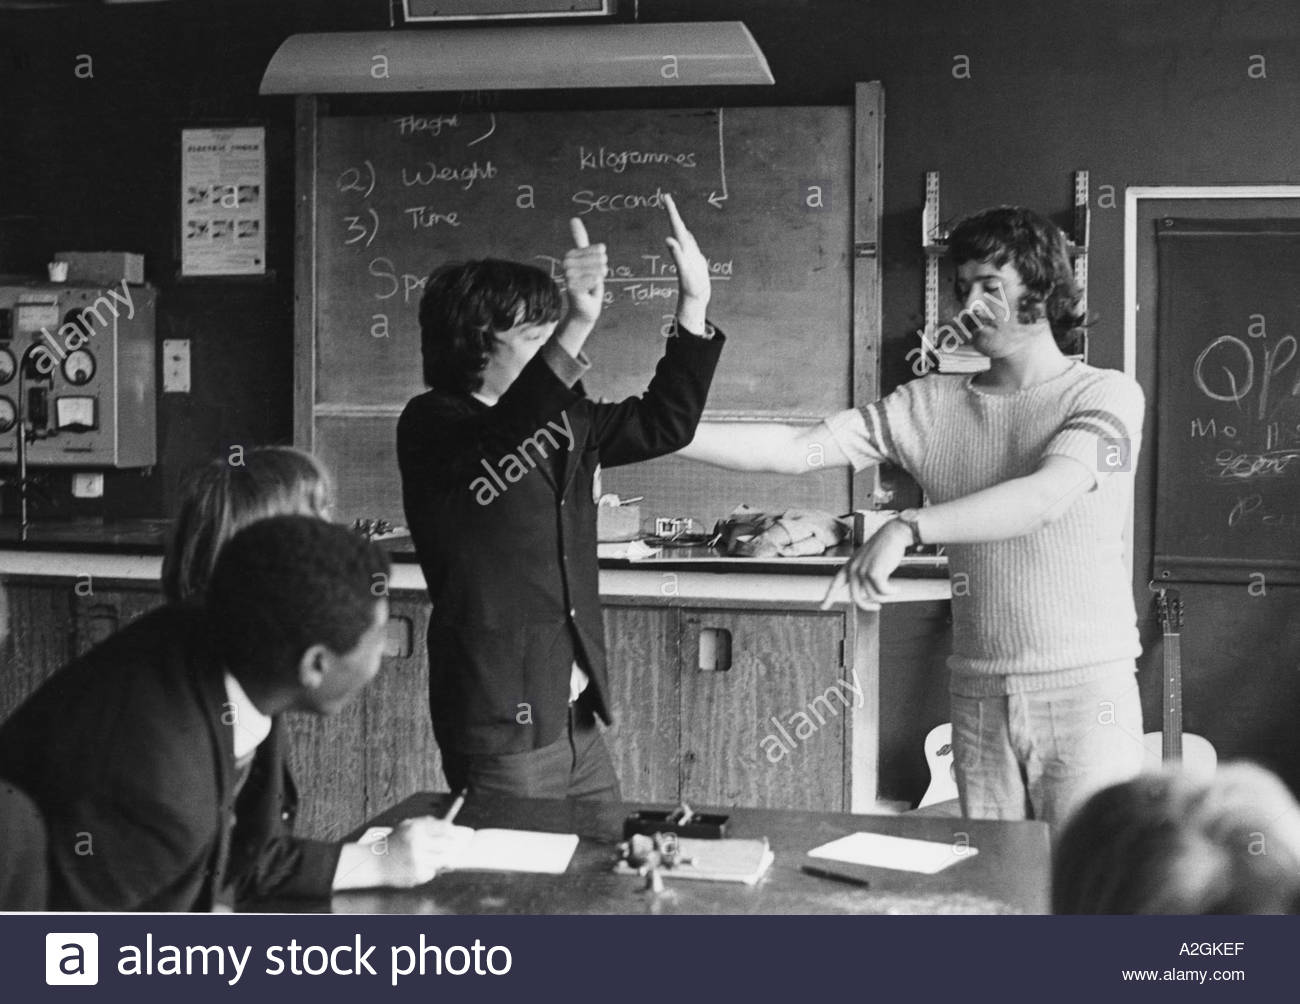 secondary school teacher trying to control a disruptive student in classroom Stock Photo